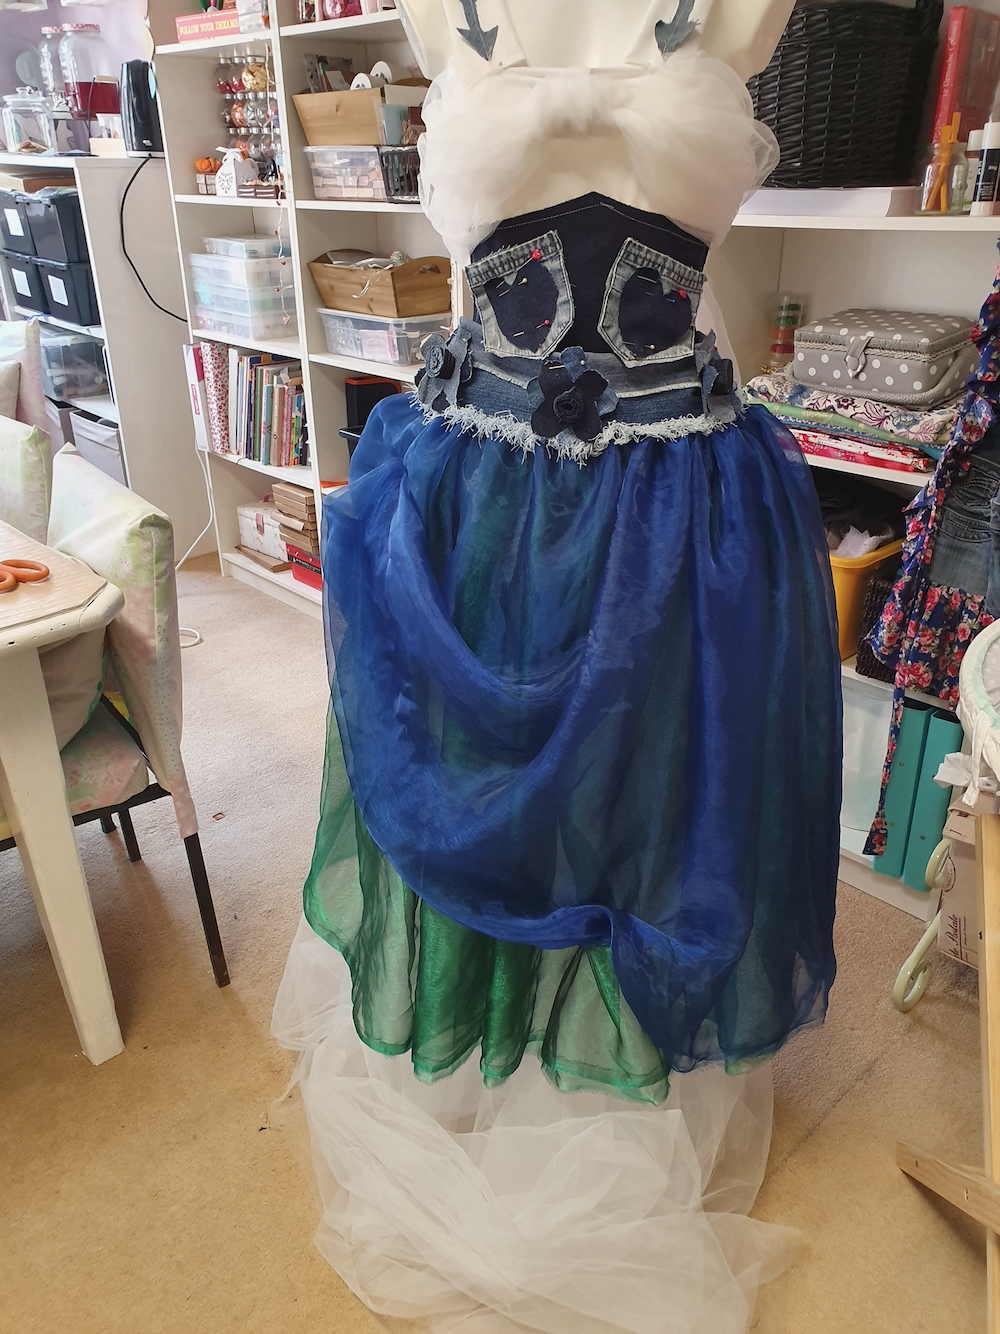 Psyche's dress in mid-construction with blue organza skirt and denim pockets sewn onto the bodice by Fitzy Peters with Natalie Bailey - Inspire